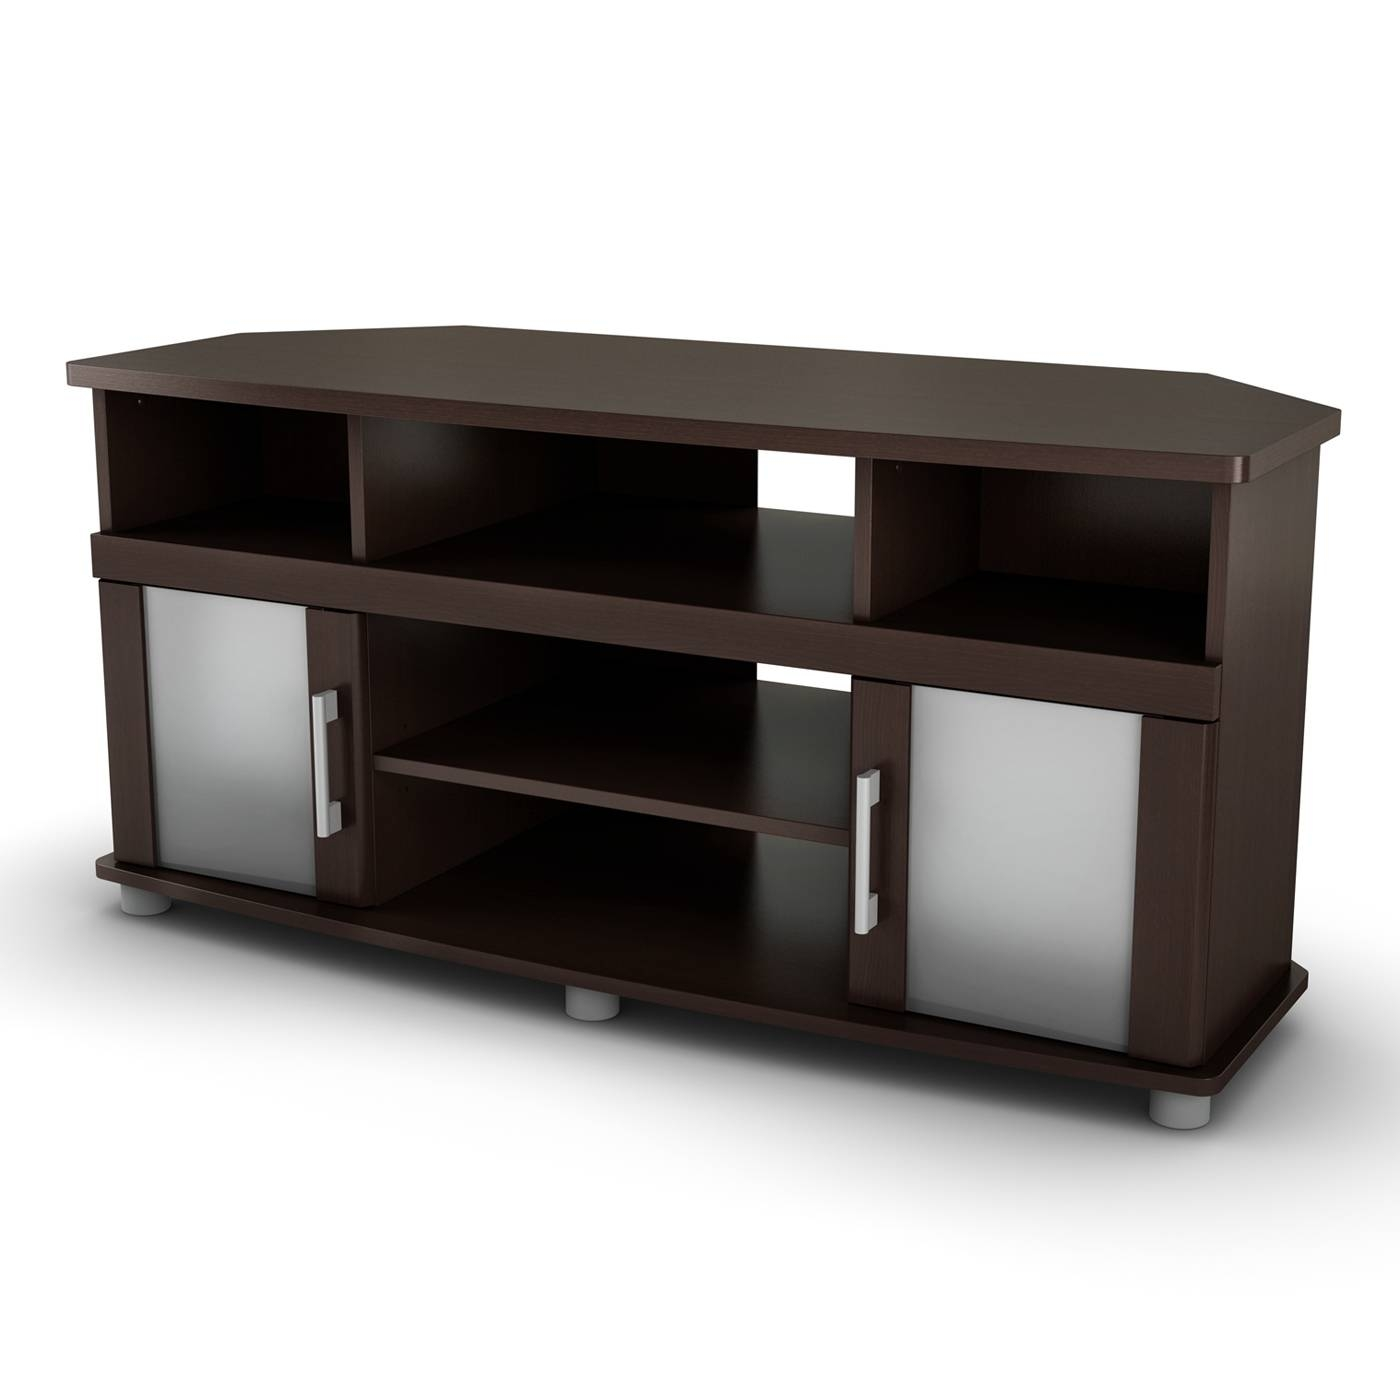 Tv Stands - Corner, Fireplace & More | Lowe's Canada within Sleek Tv Stands (Image 14 of 15)